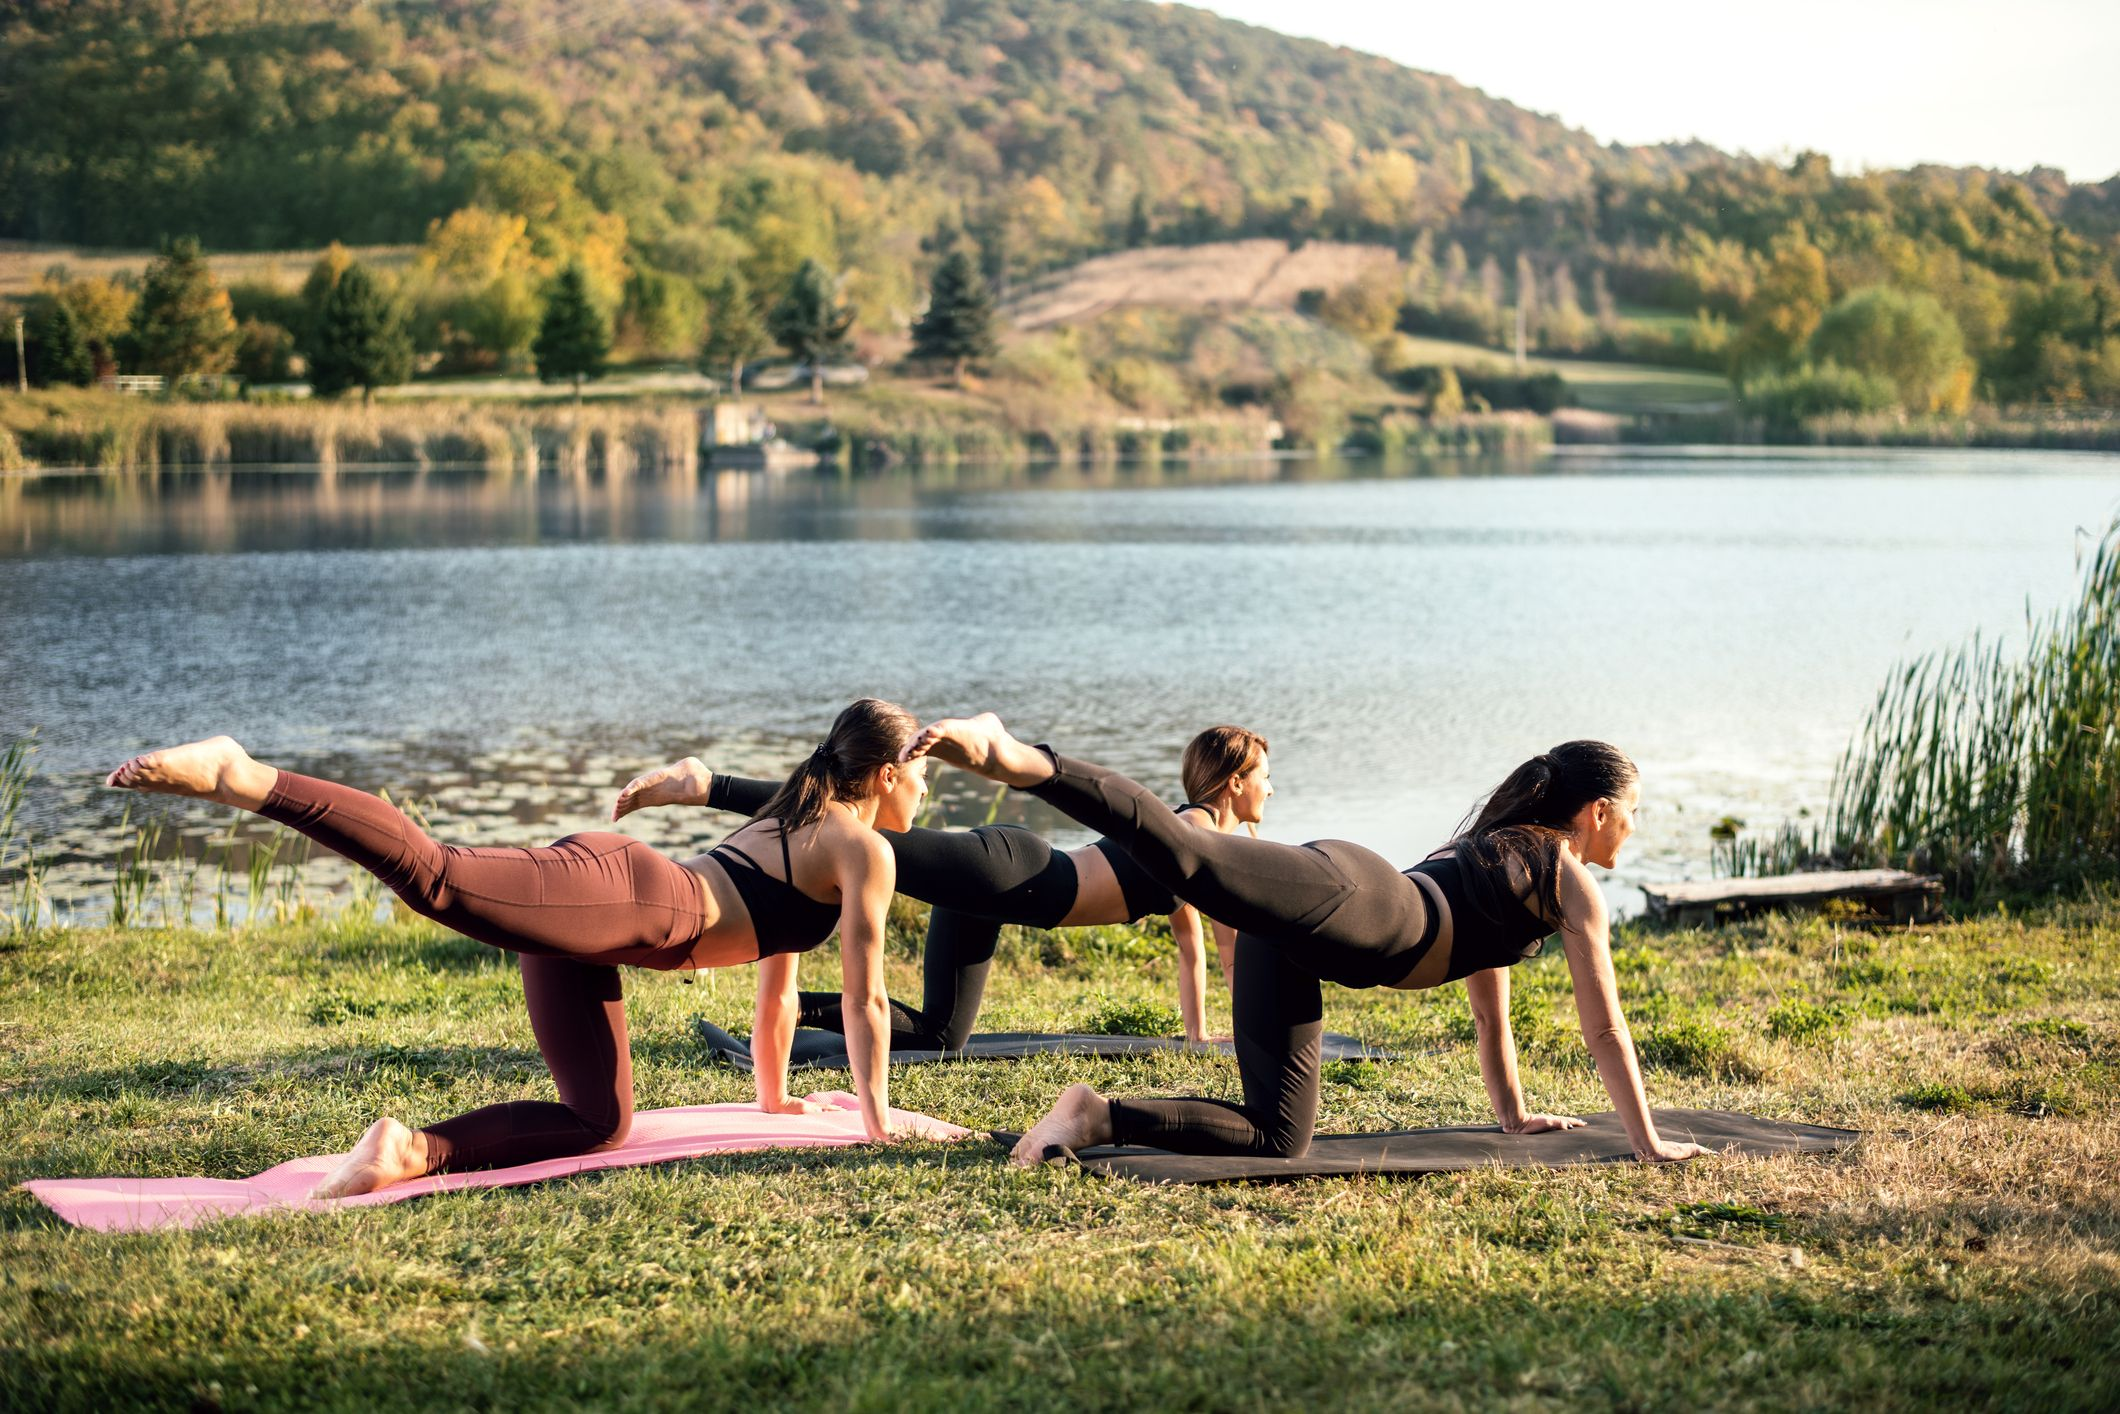 Women doing yoga by a lake